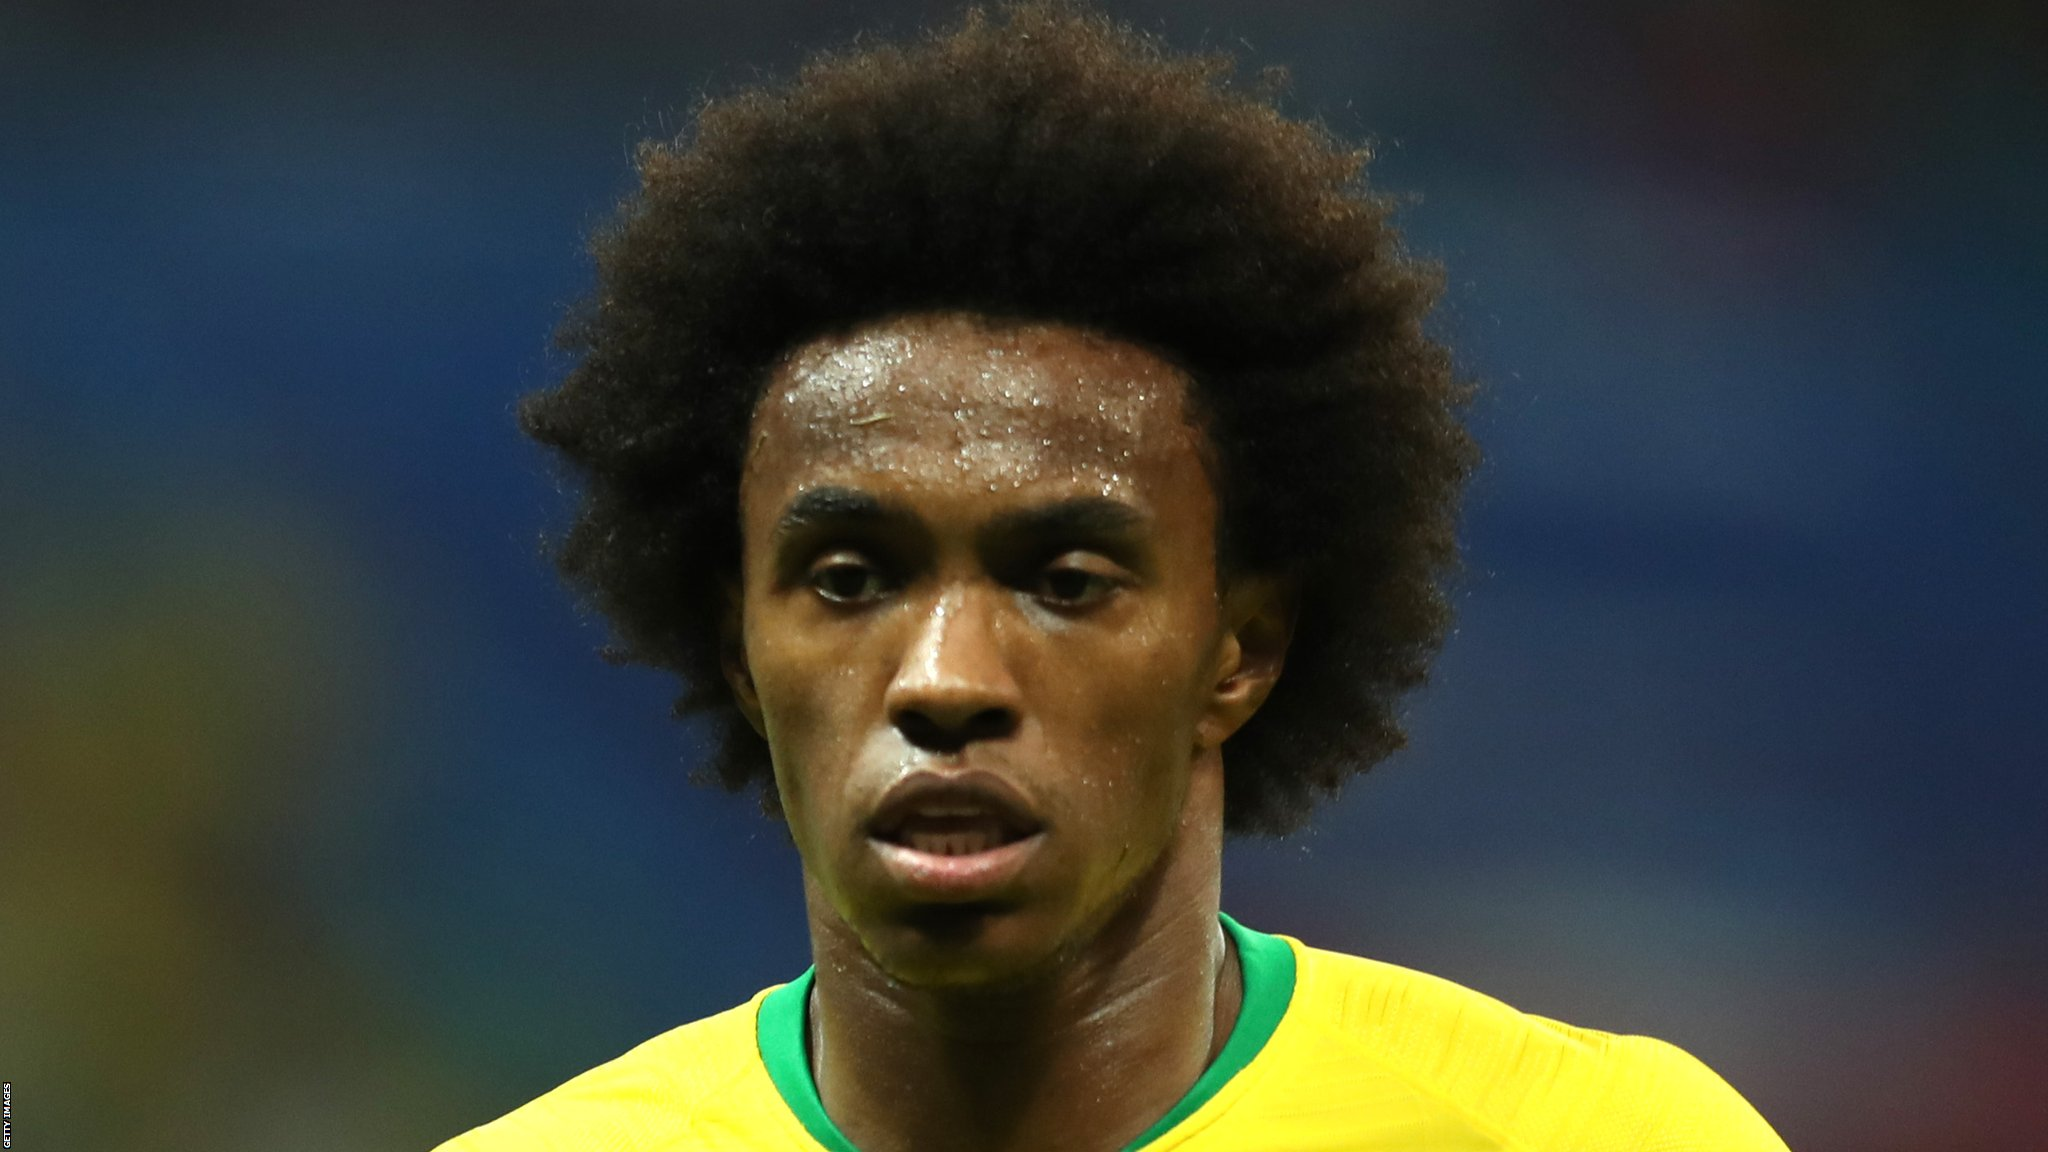 Barca launch third bid for Willian - Saturday's gossip